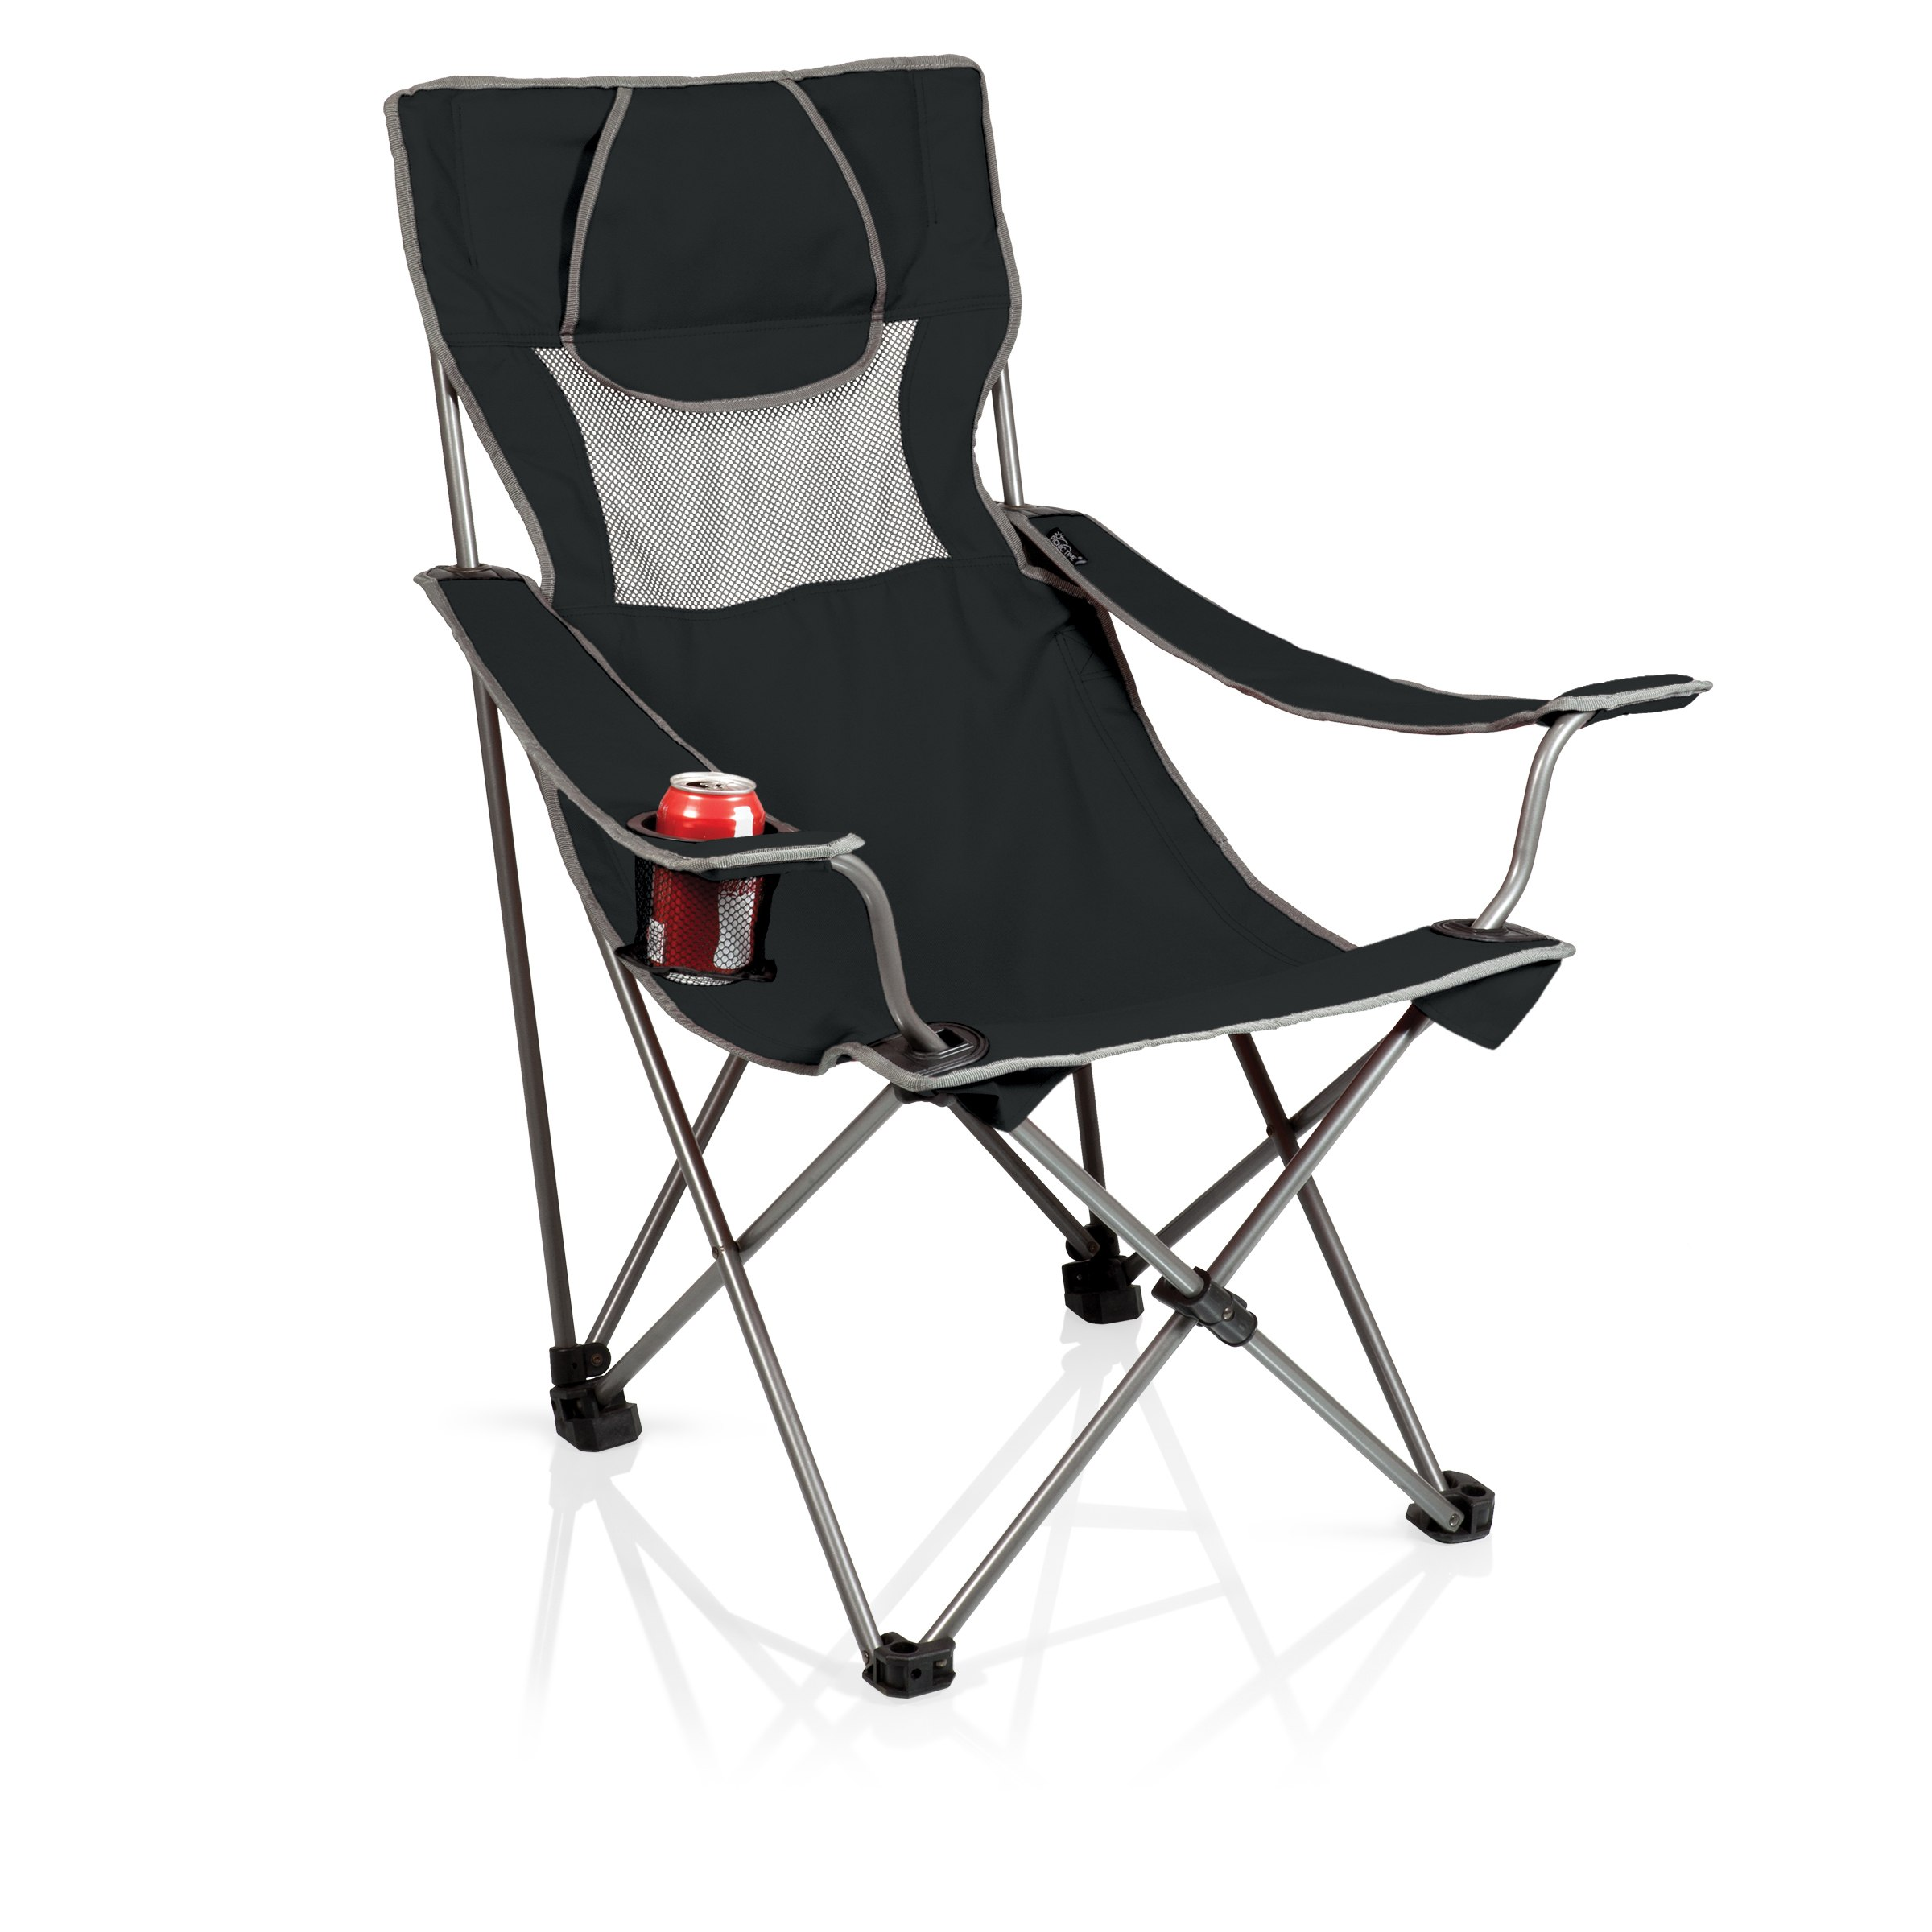 Campsite Chair Black/grey